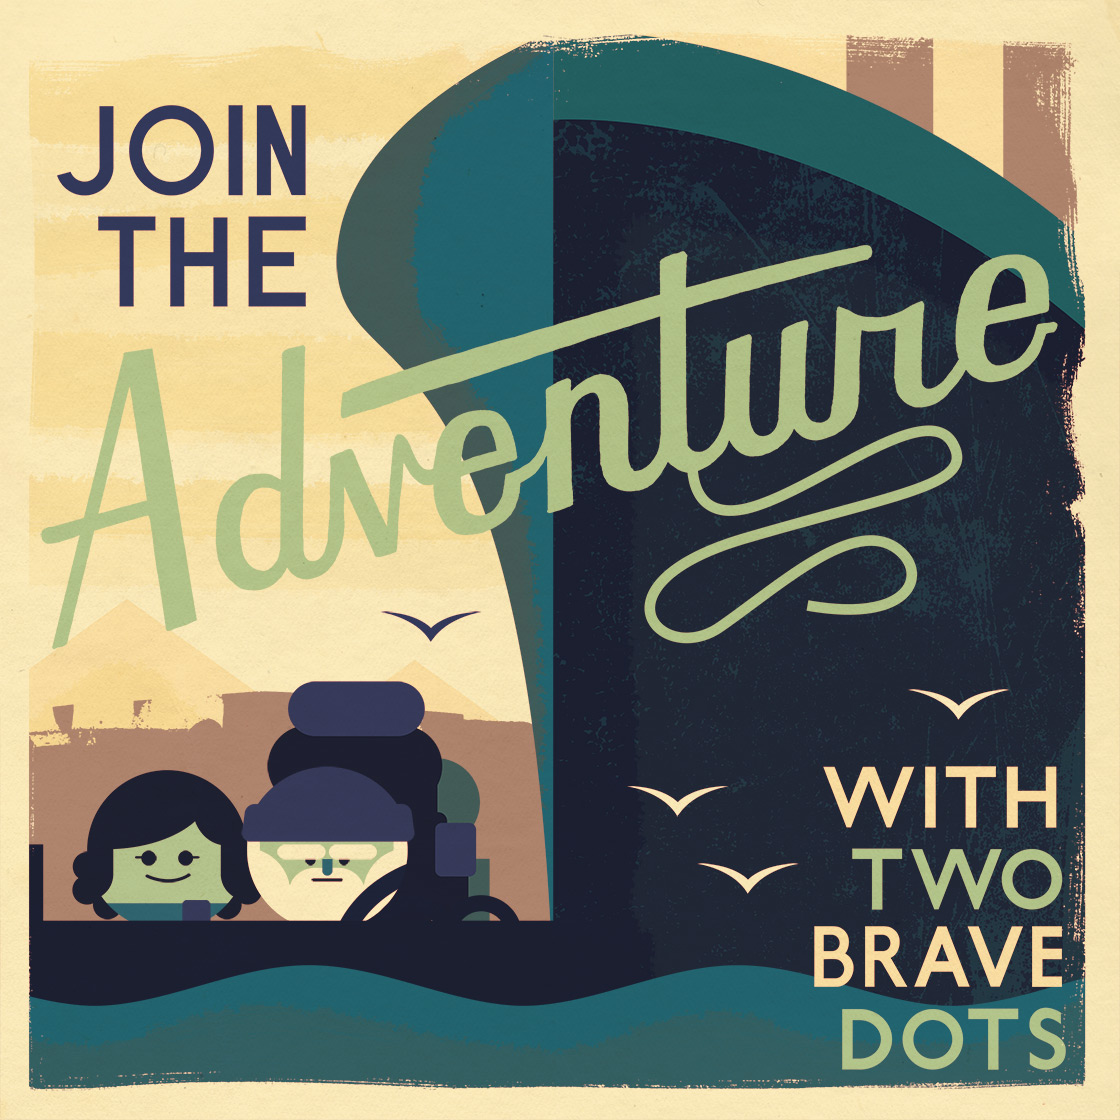 Twodots - Magazine cover